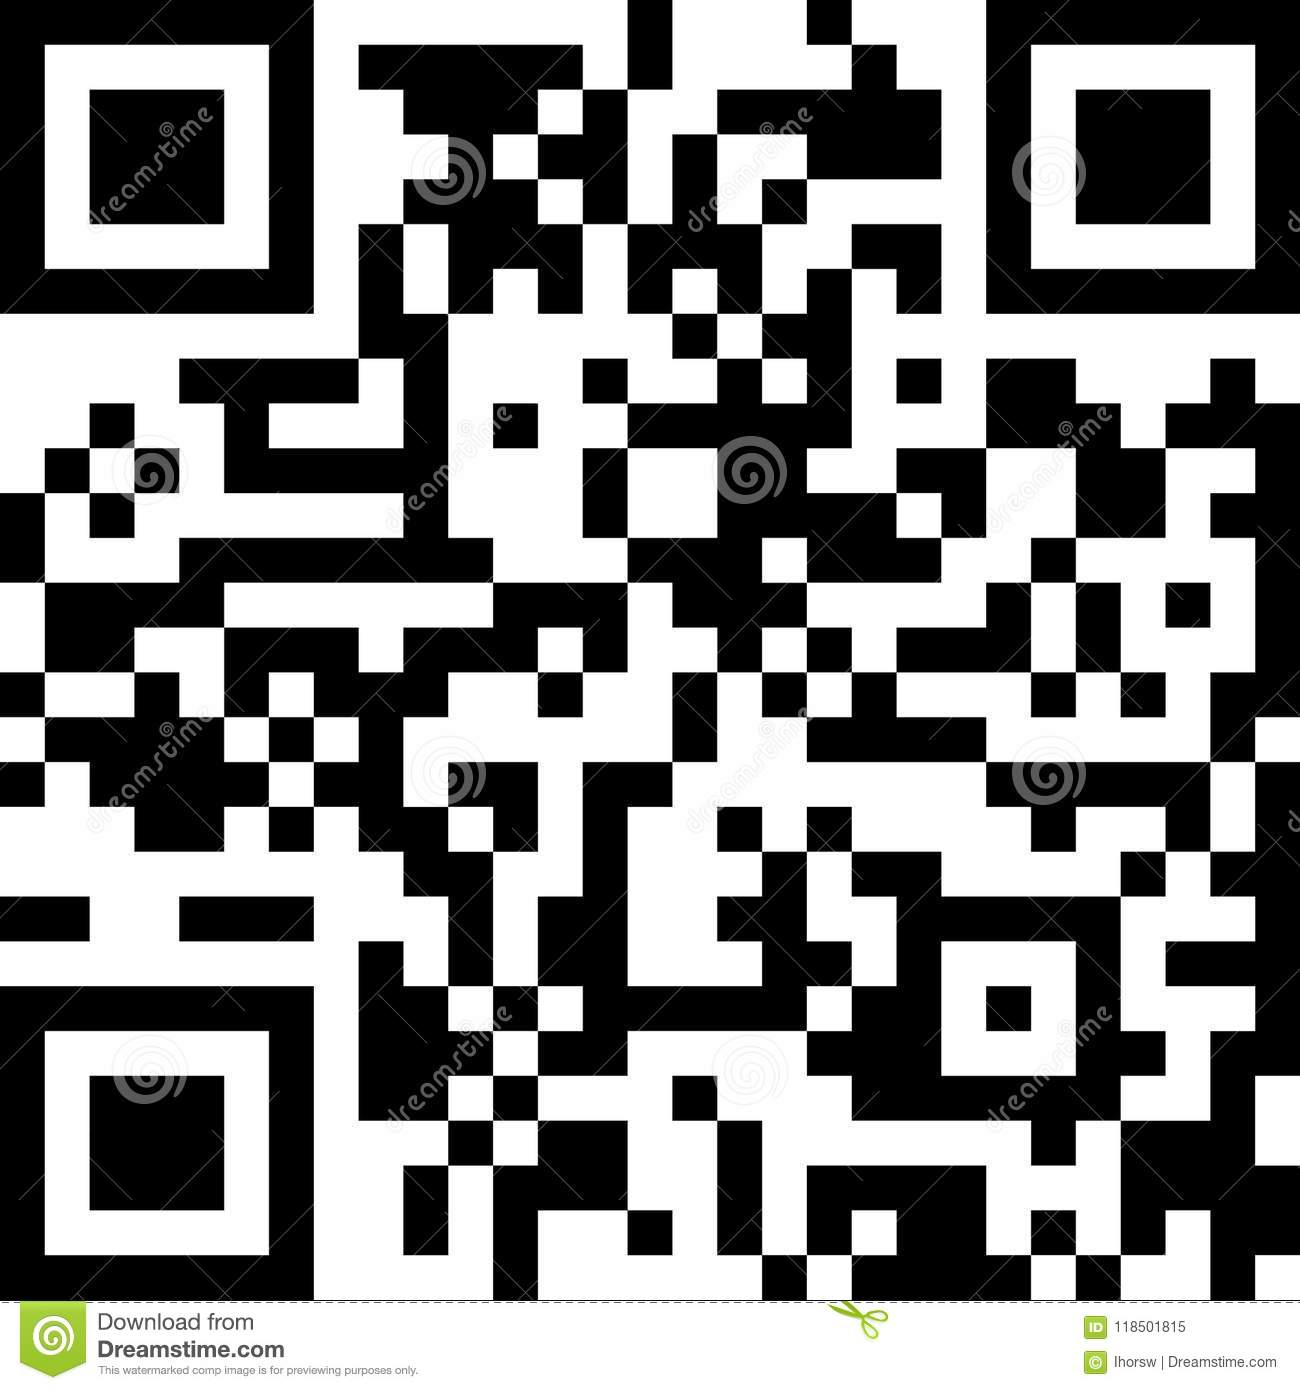 imagesthai.com royalty-free stock images ,photos, illustrations and vector - Qr code